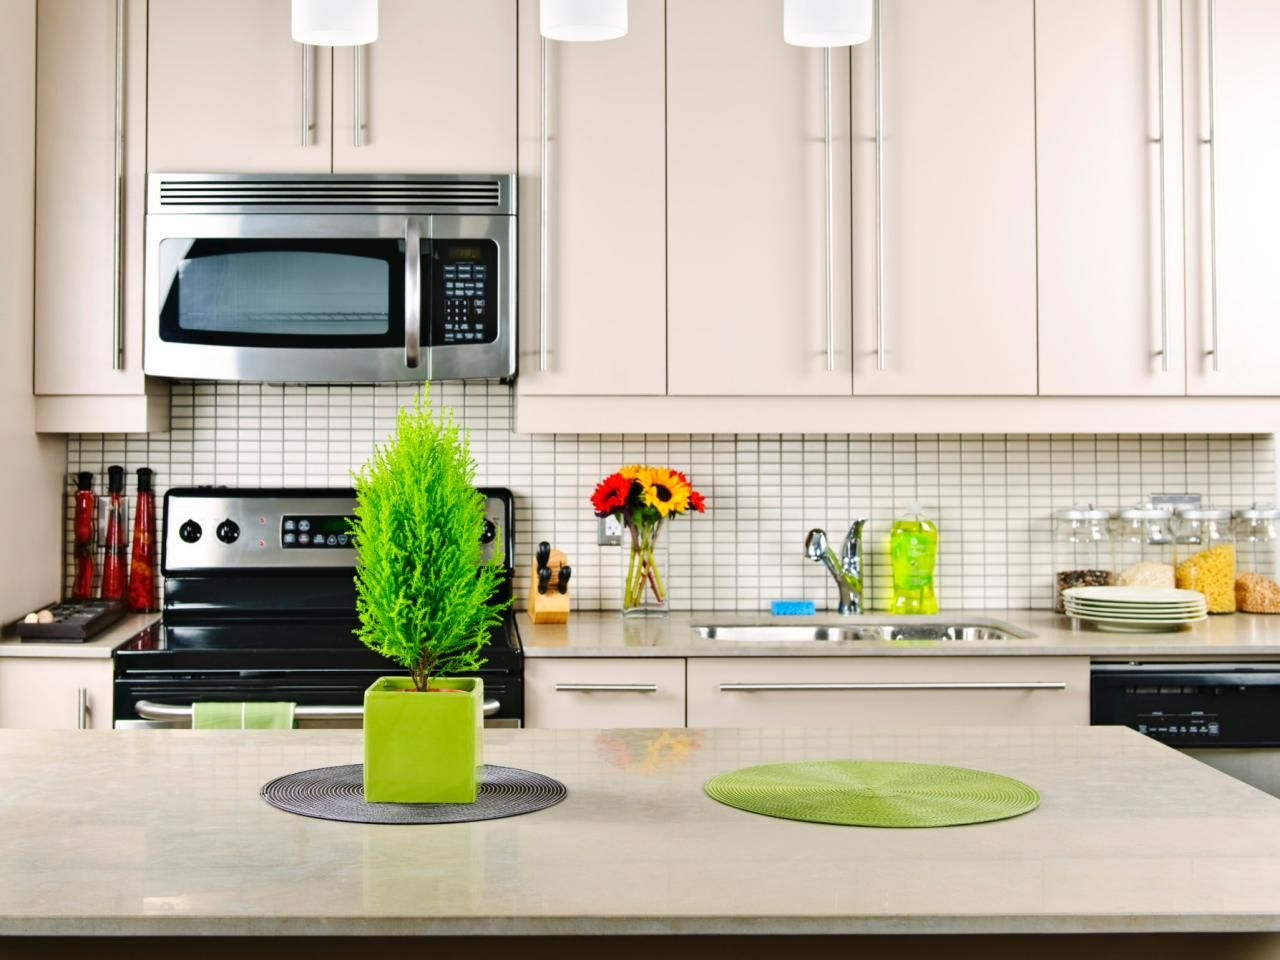 emejing counter decorating ideas images - home decorating ideas